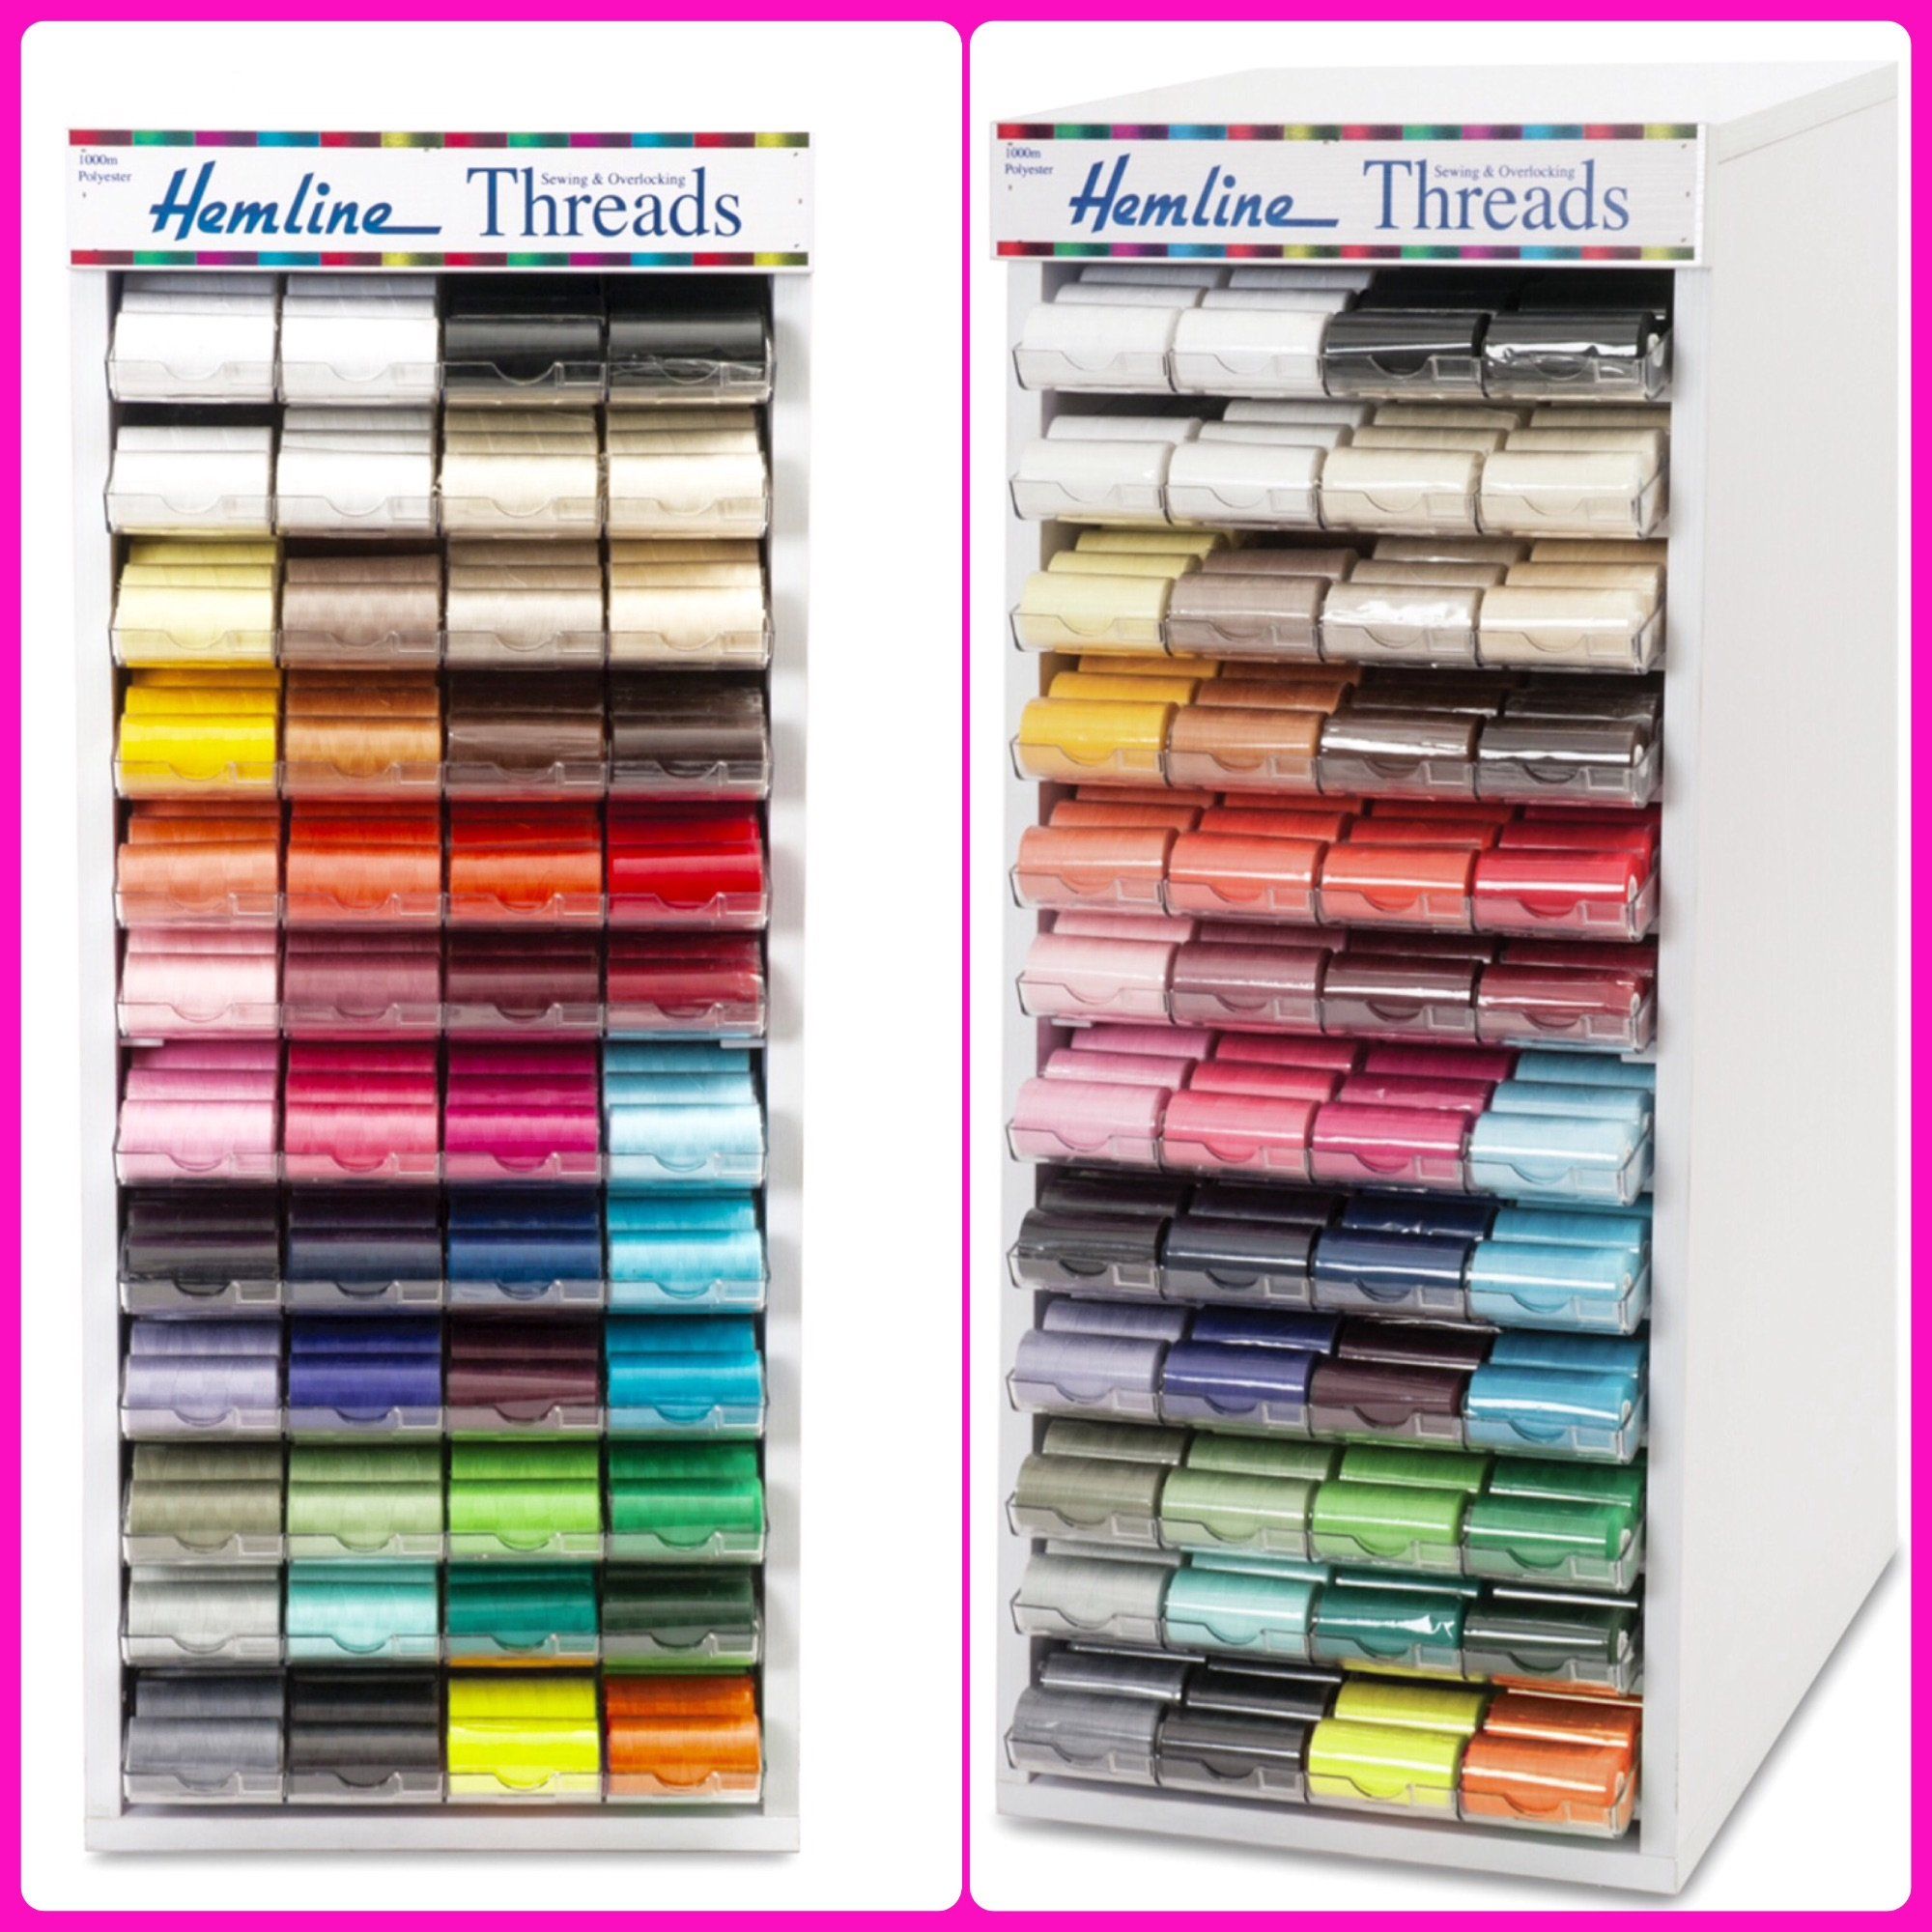 Hemline sewing threads